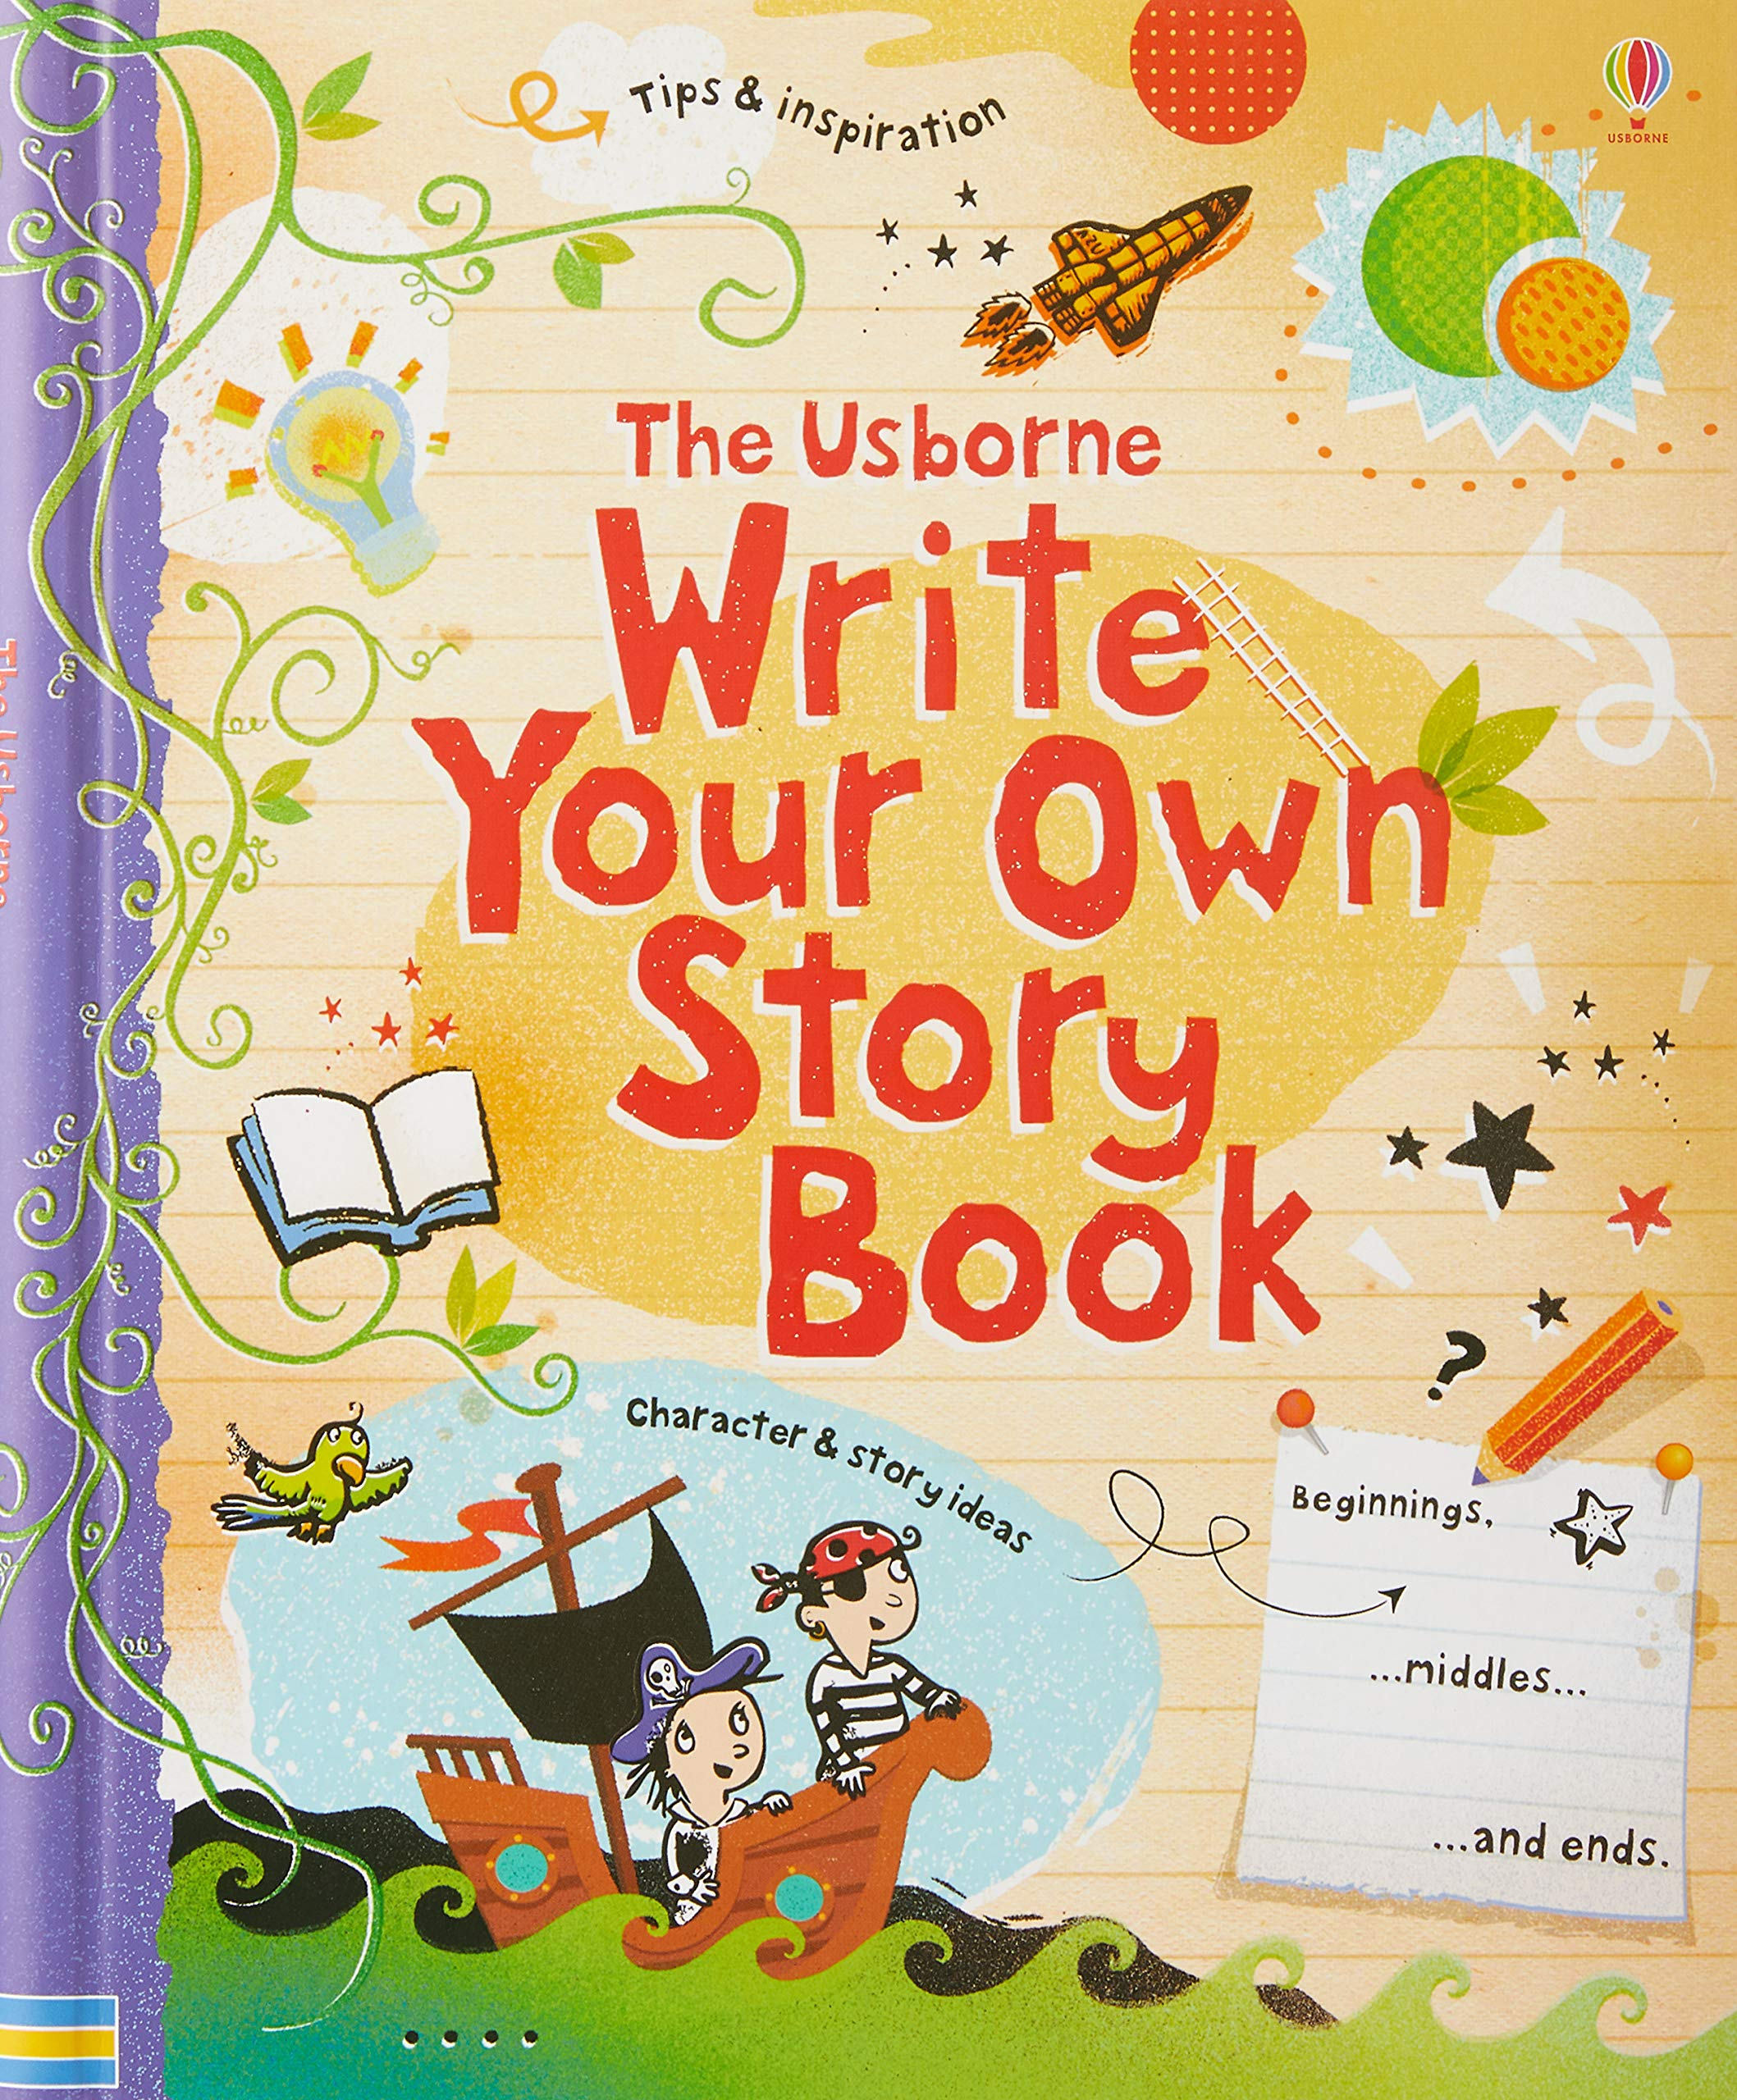 Write Your Own Storybook: Amazon.co.uk: Louie Stowell, Jane Chisholm: Books